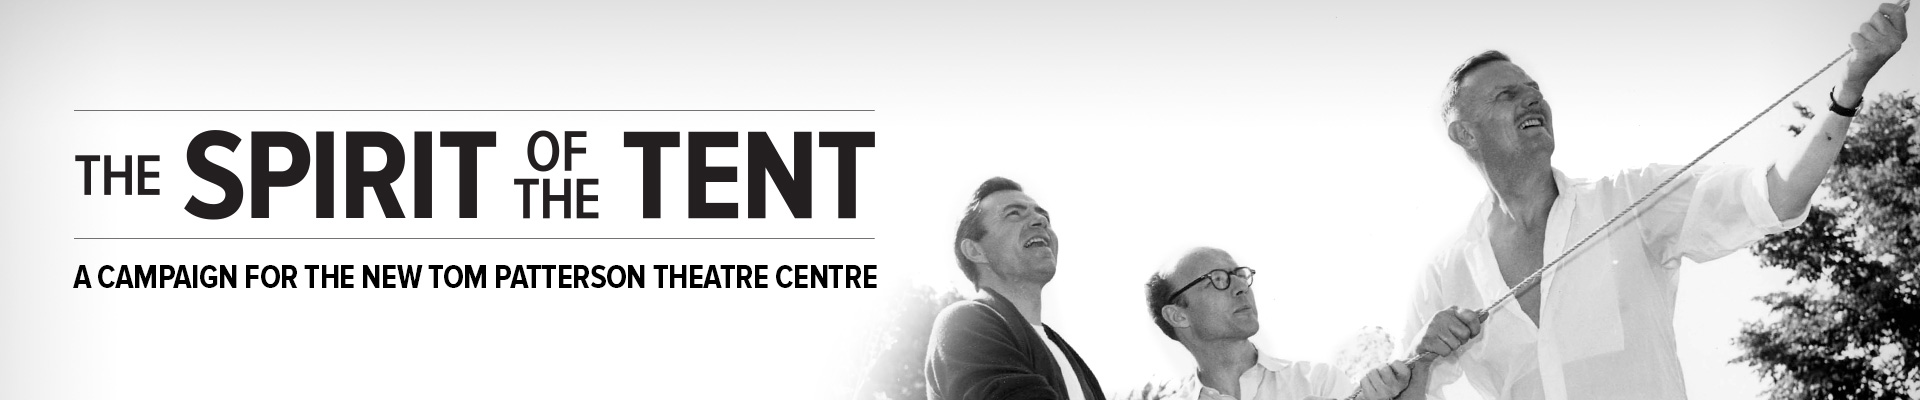 The Spirit of the Tent - A Campaign for the new Tom Patterson Theatre Centre